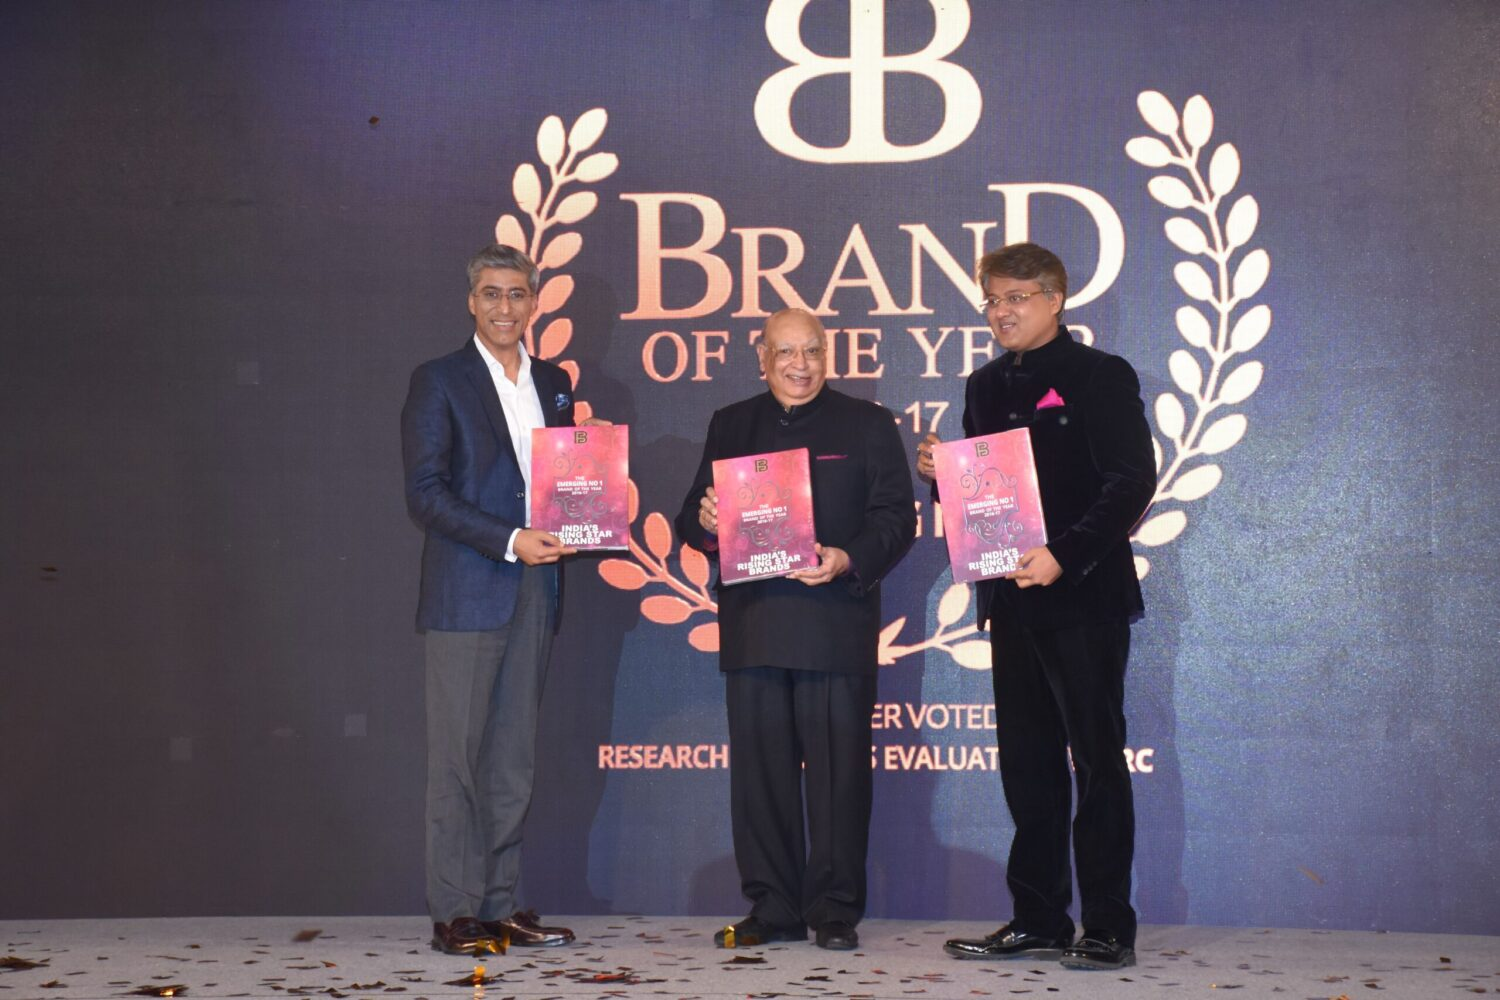 India's Inspirational Brands & Leaders